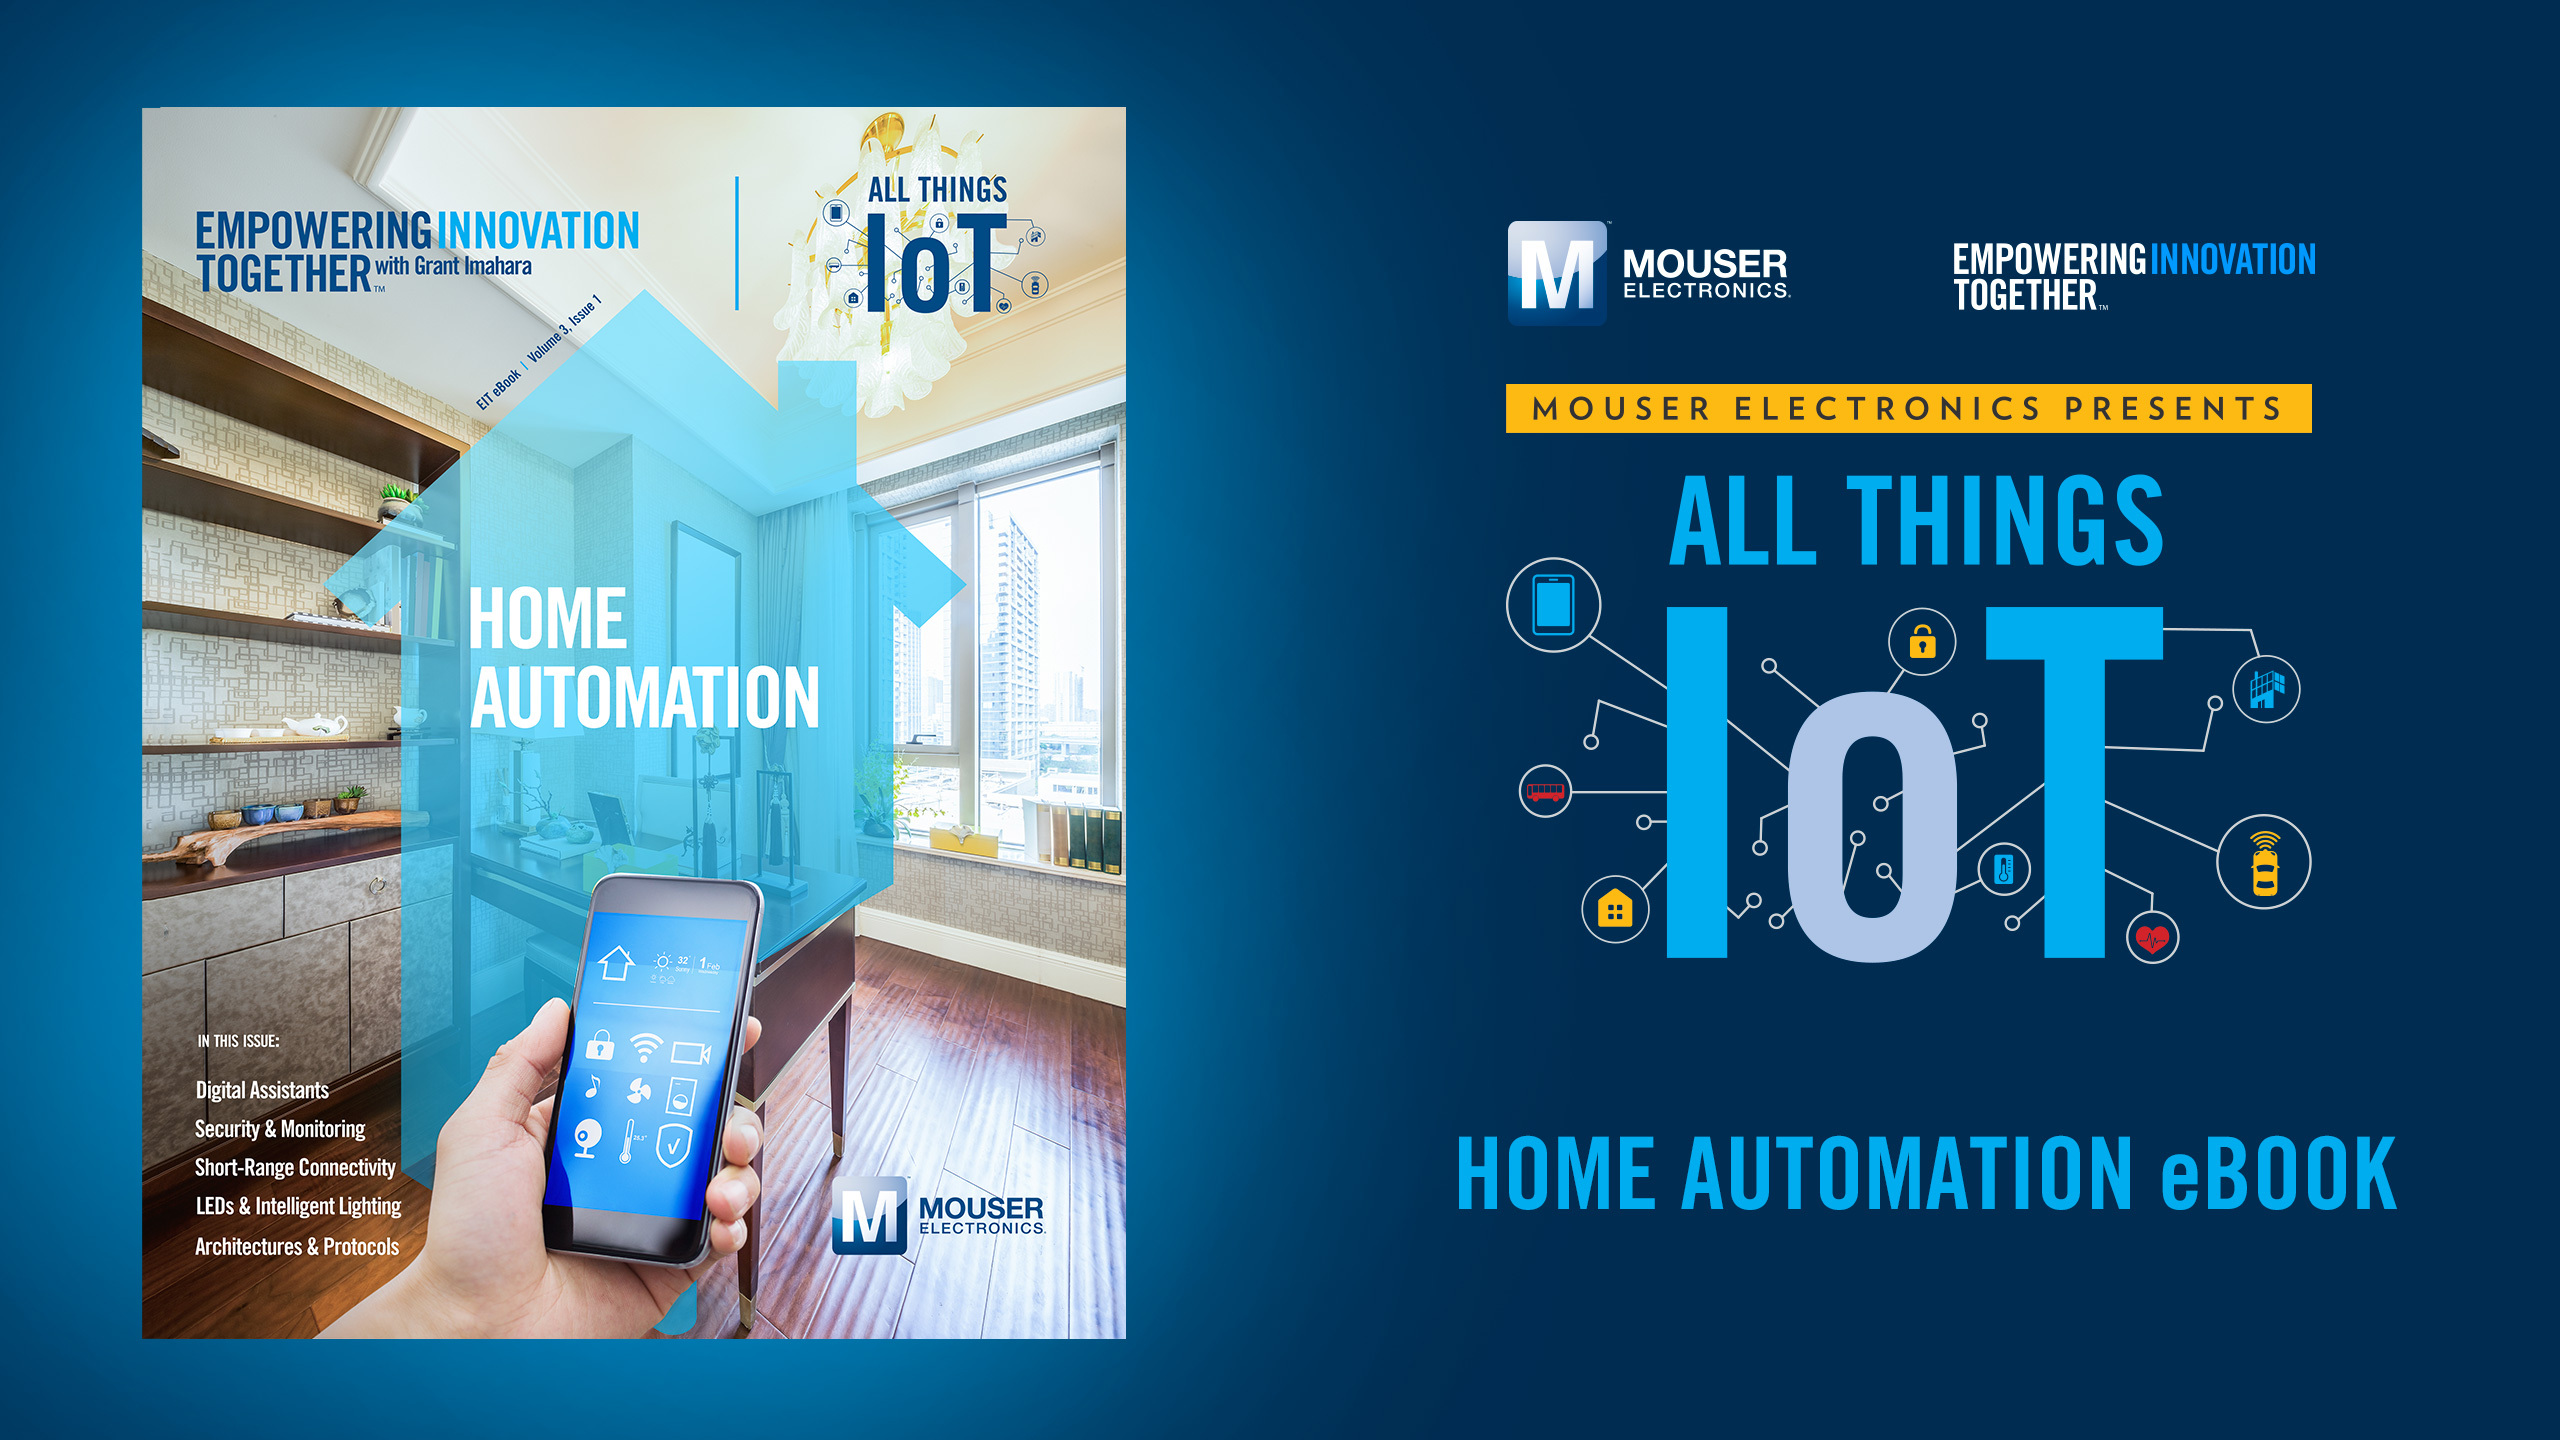 In Home Electronics Mouser Electronics Debuts New E Book On Home Automation As Part Of